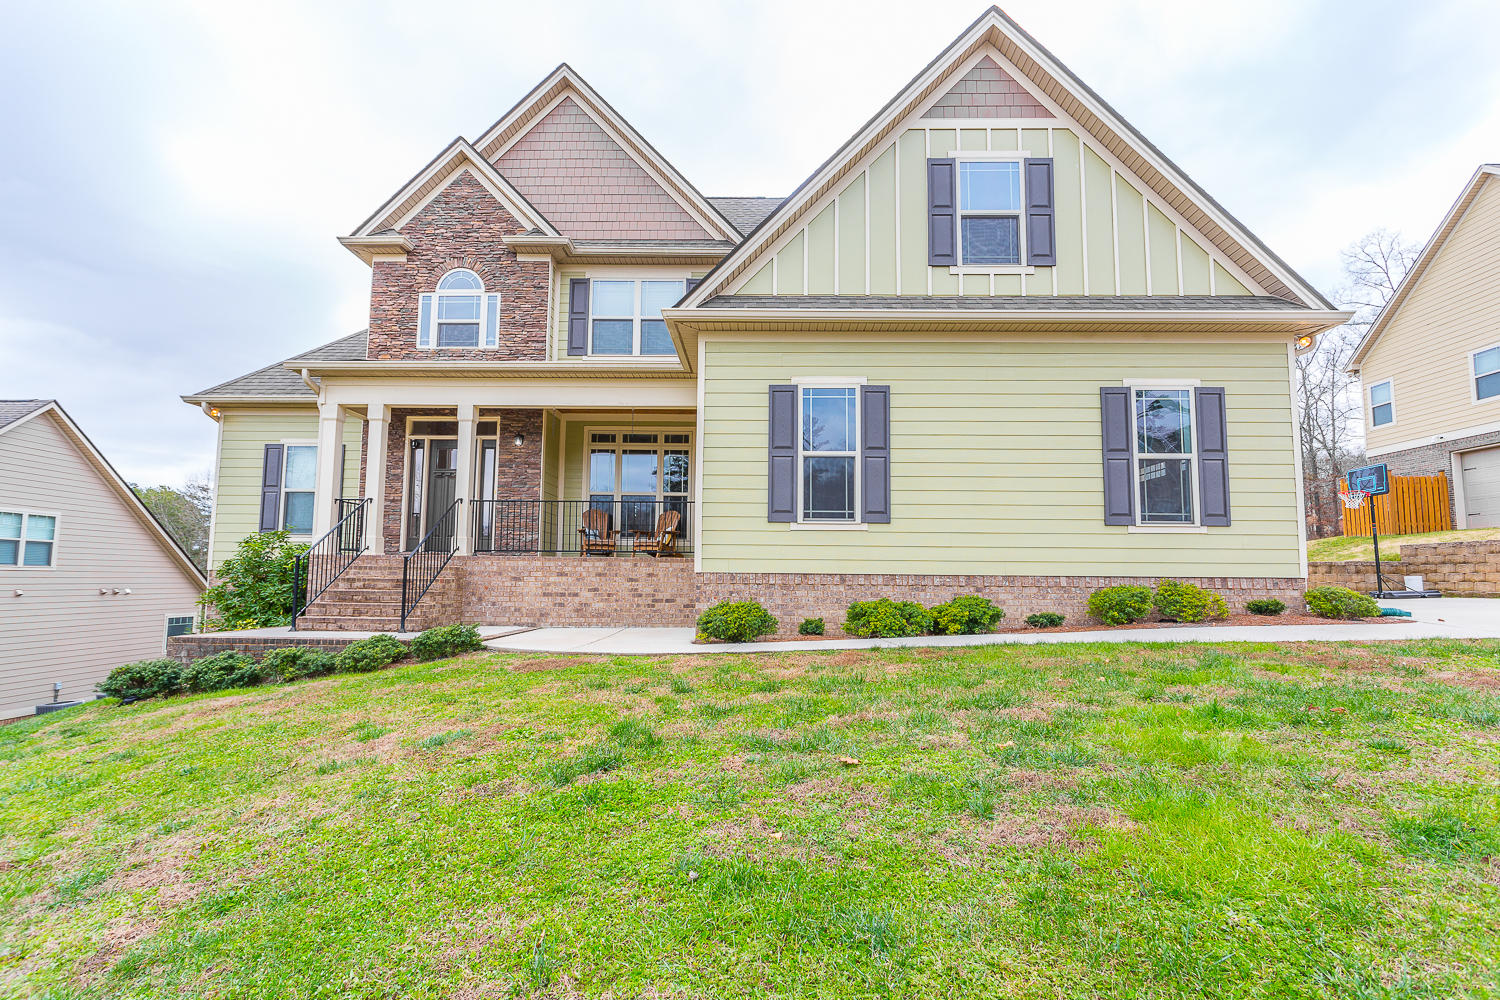 Details for 7388 Sweet Magnolia, Harrison, TN 37341